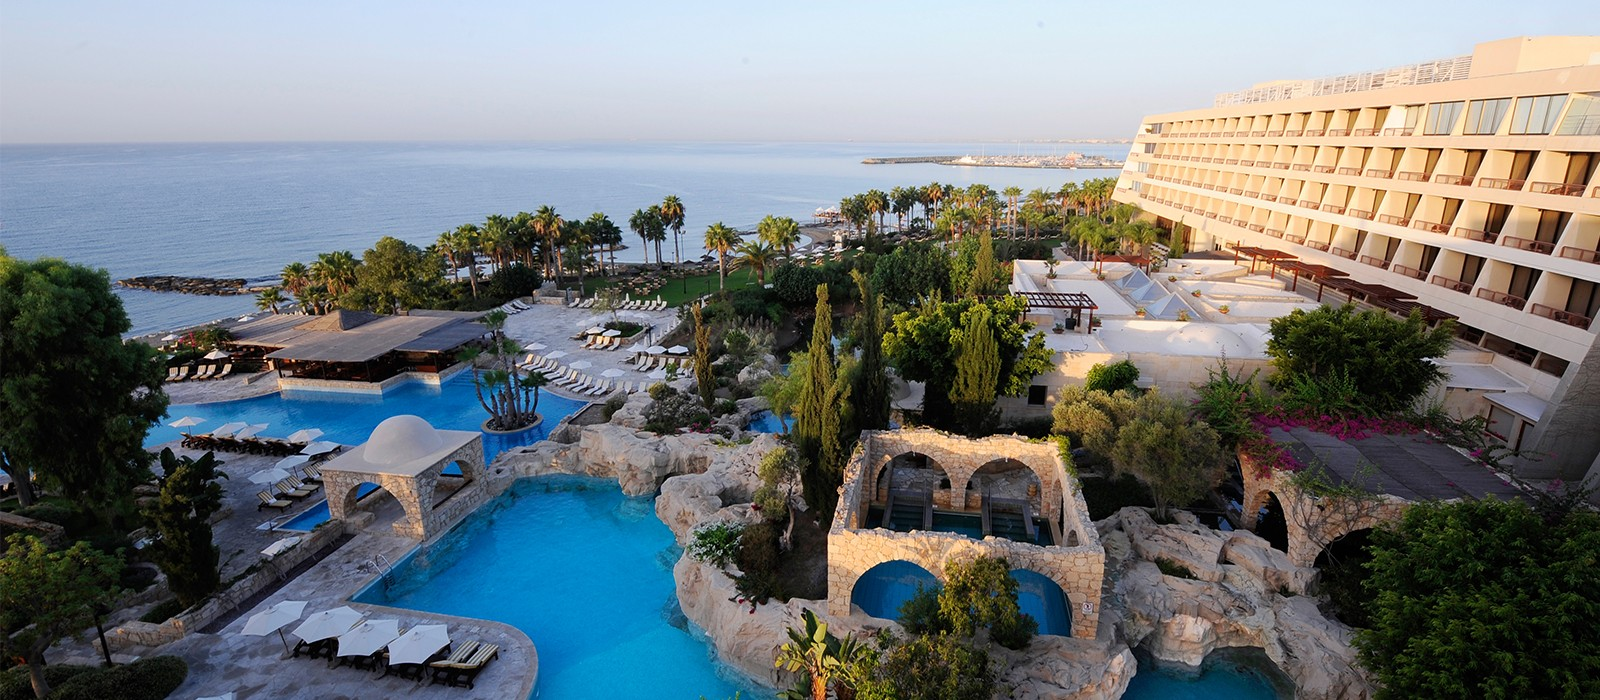 Header - Columbia Beach Resort Limassol - Luxury Cyprus Holidays